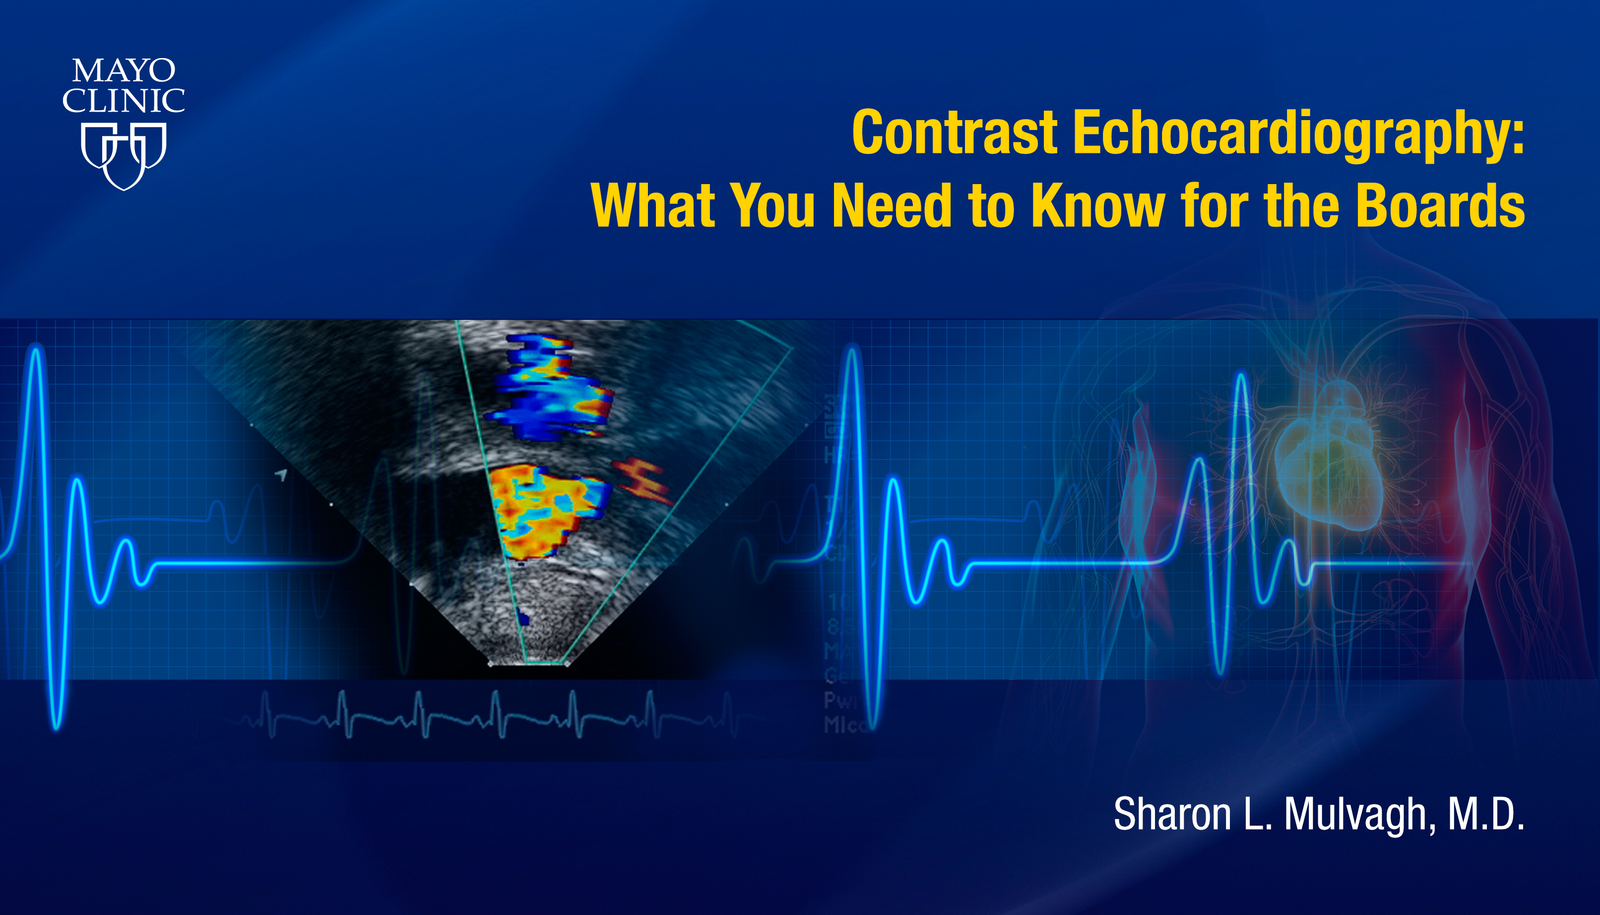 Contrast Echocardiography: What You Need to Know for the Boards